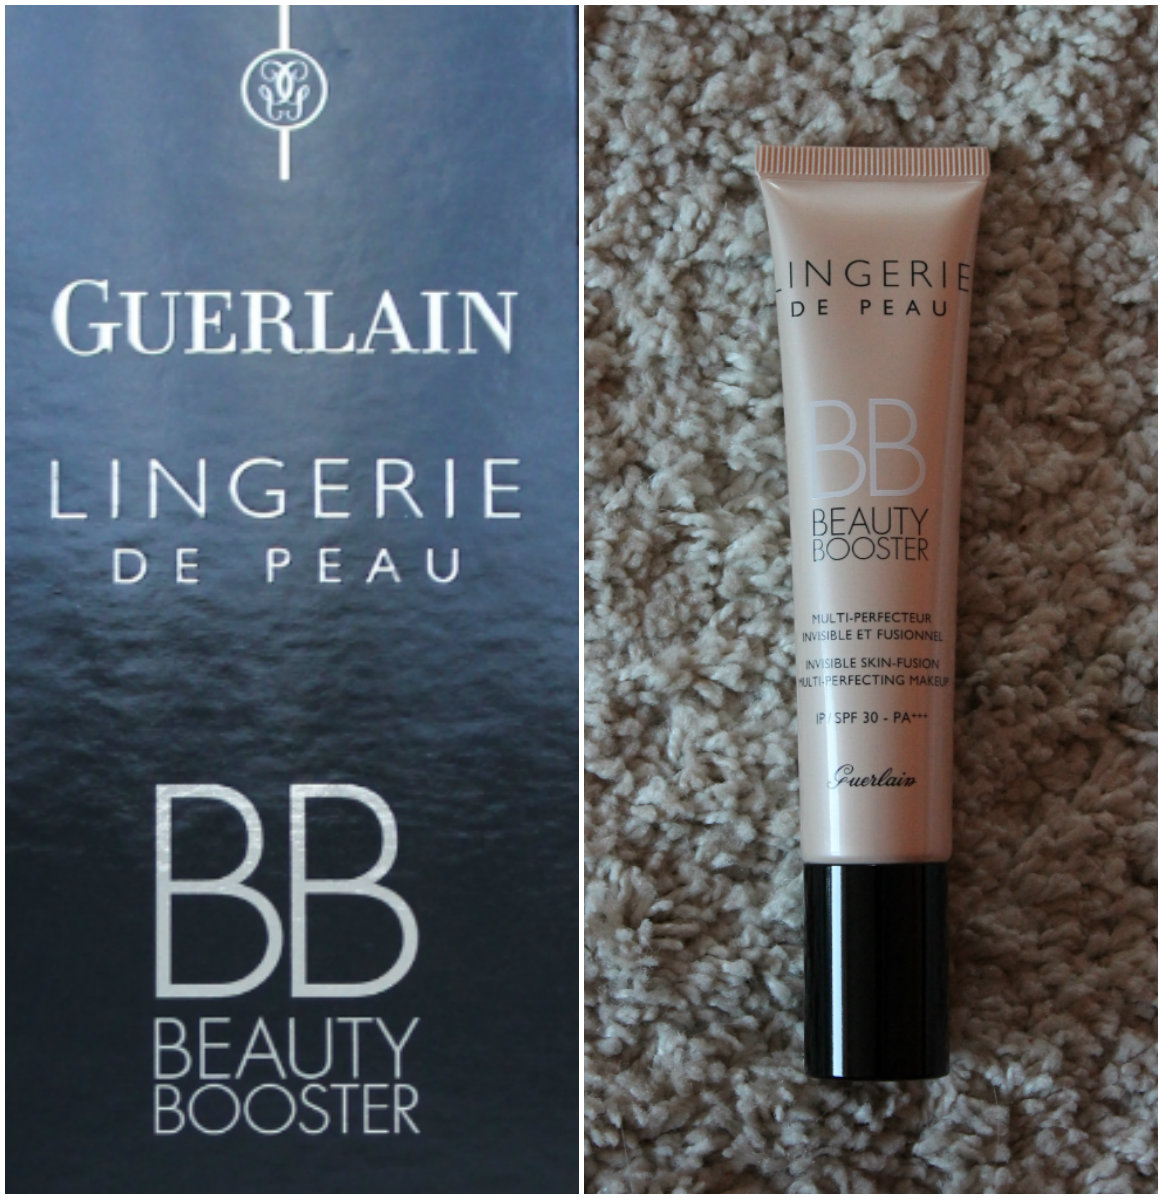 bb cream guerlain lingerie de peau. Black Bedroom Furniture Sets. Home Design Ideas